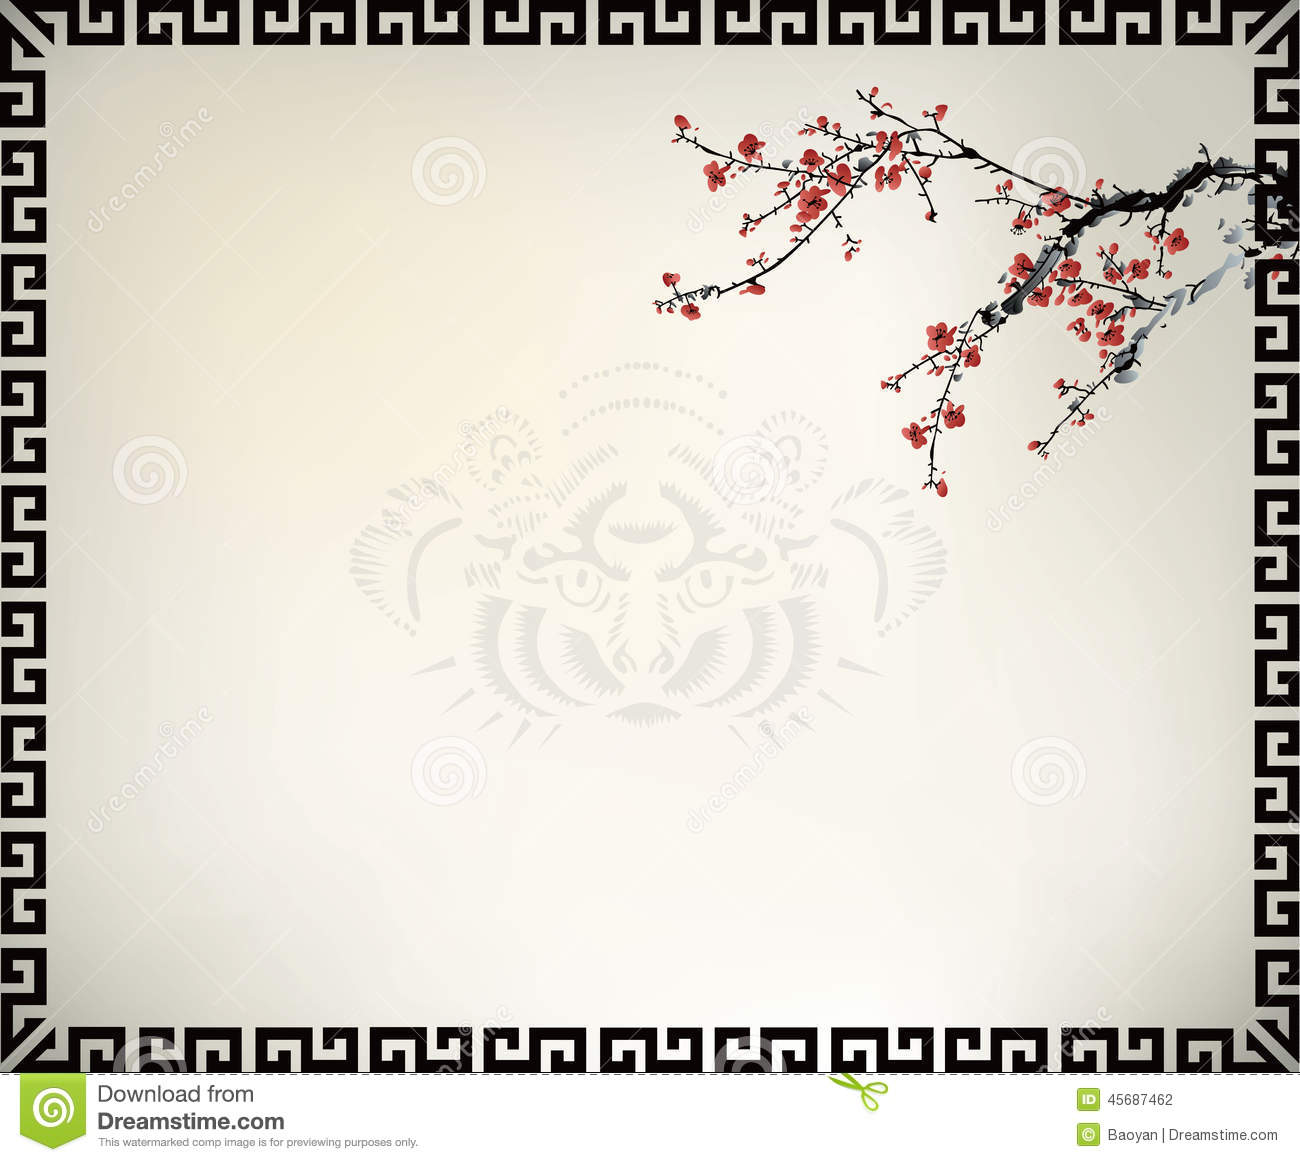 tiger print wallpaper border